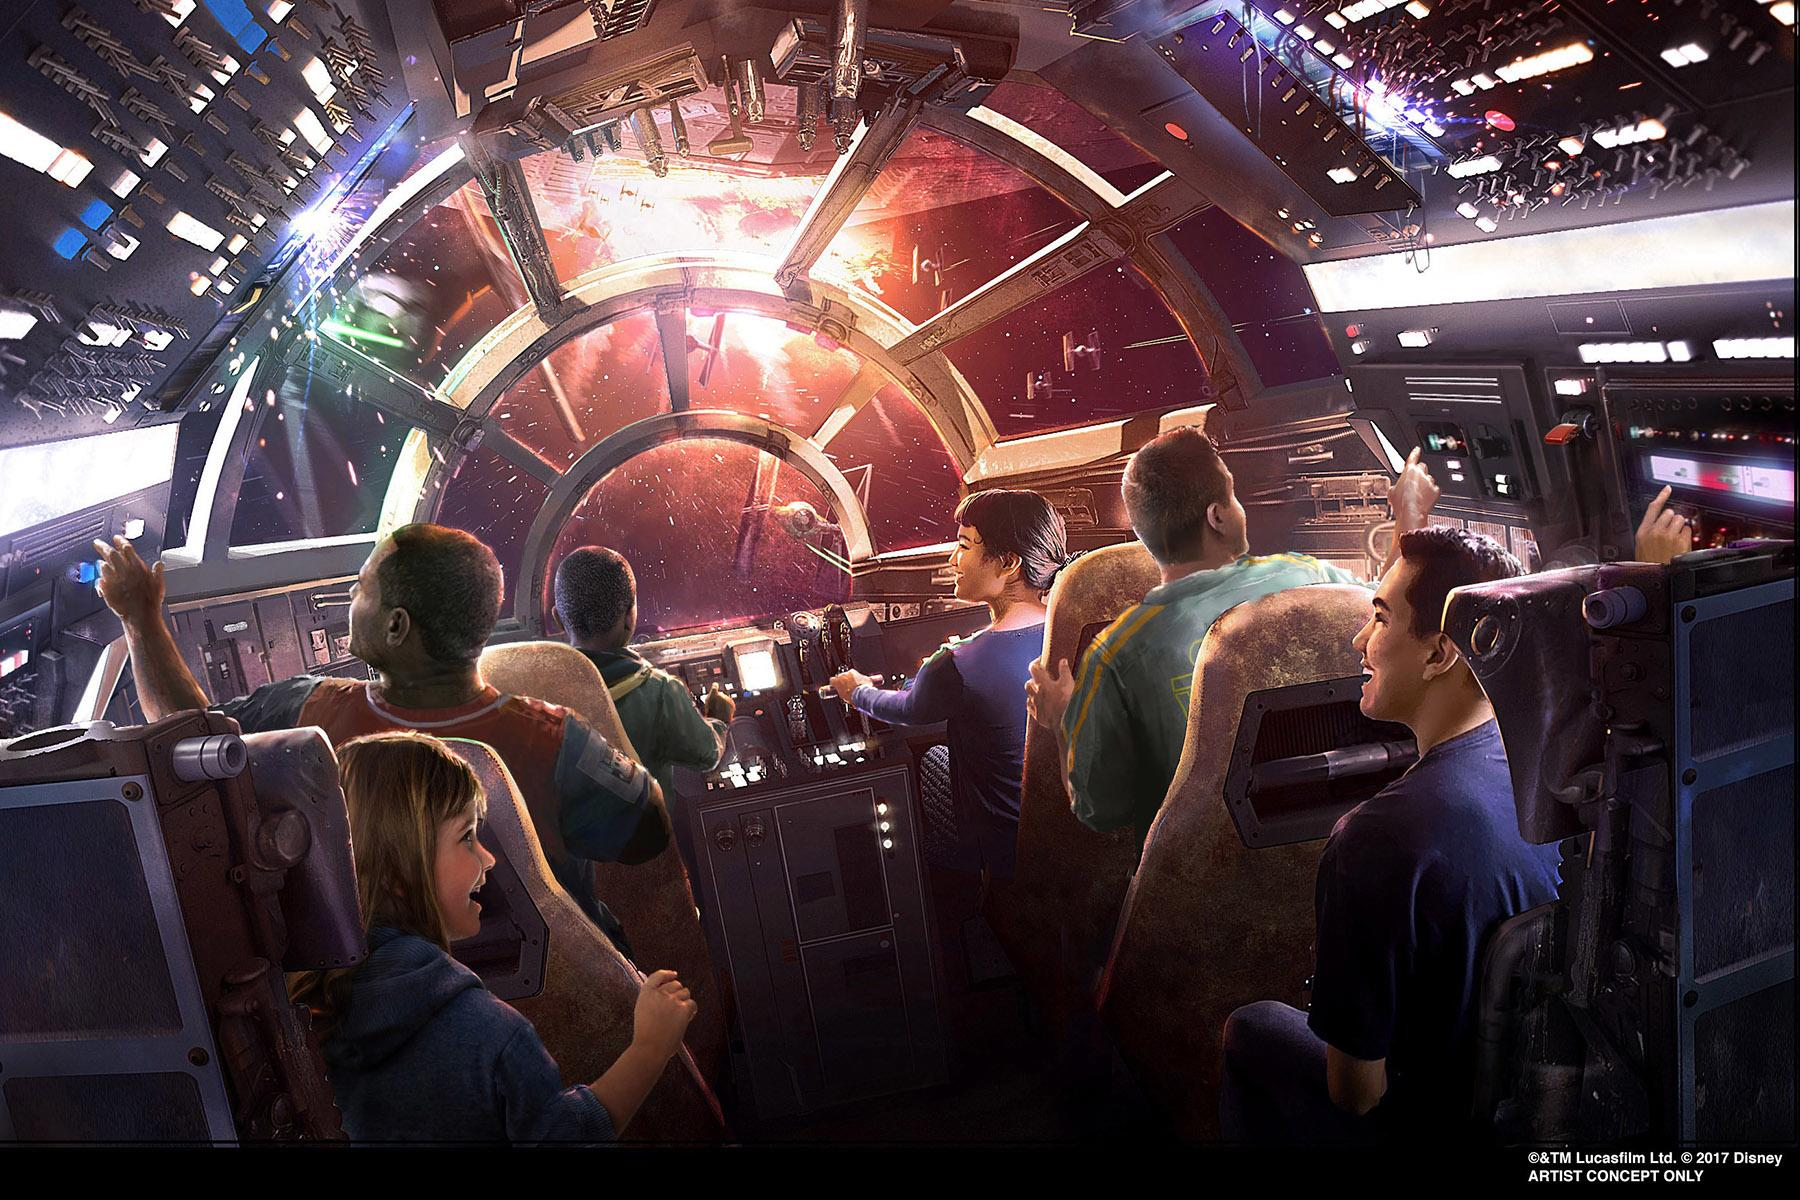 Everything We Know About Disney Star Wars Theme Park